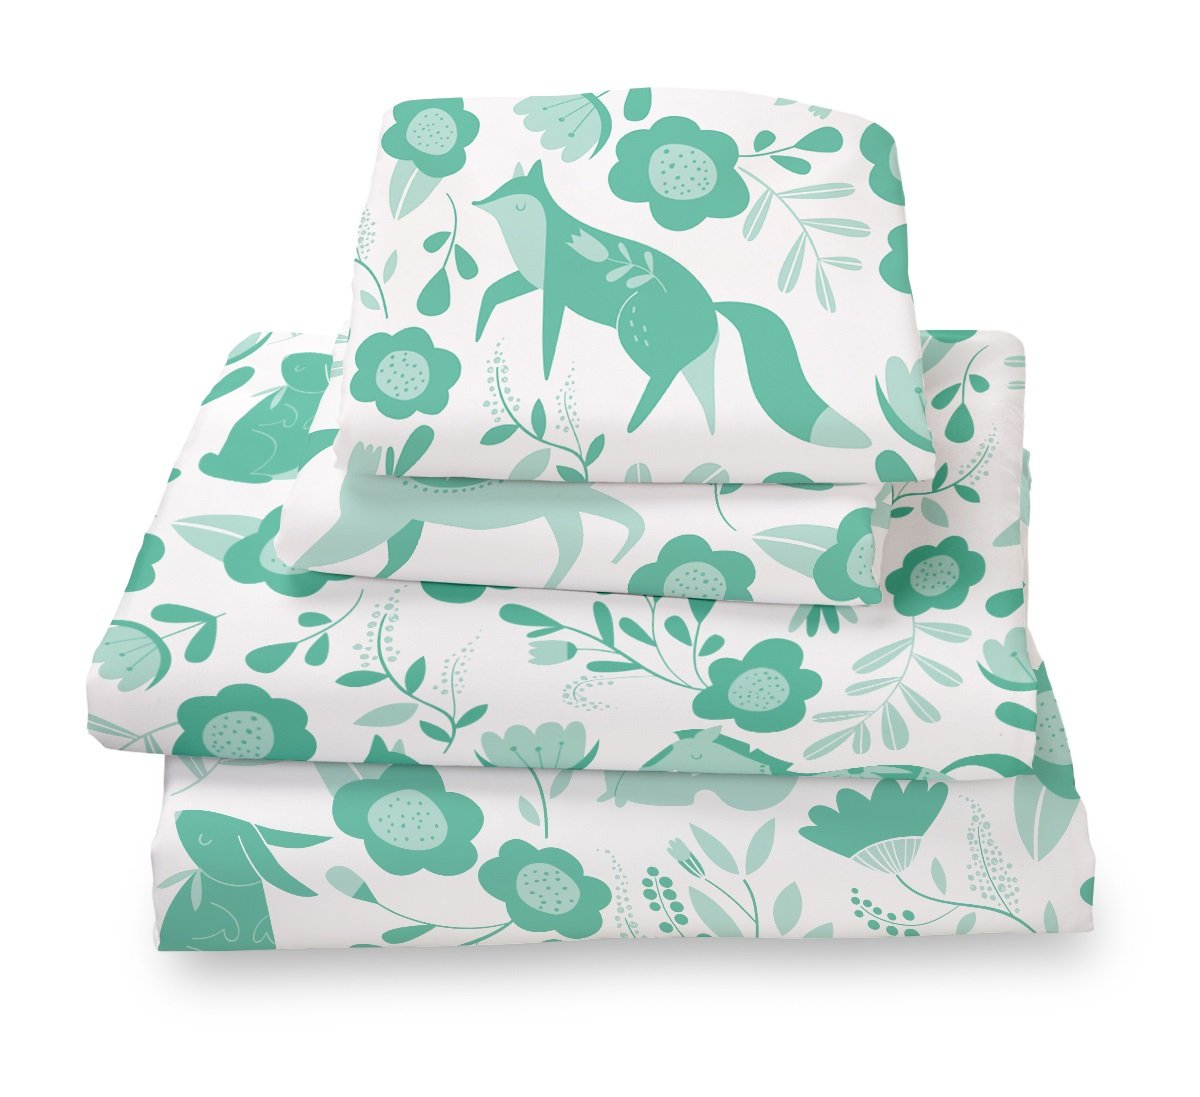 Where The Polka Dots Roam Seafoam Green Folktale Forest Animals Full Size Sheet Set, Soft Sheets for Deep Mattresses, 4 Pieces Full Size Set in White and Teal